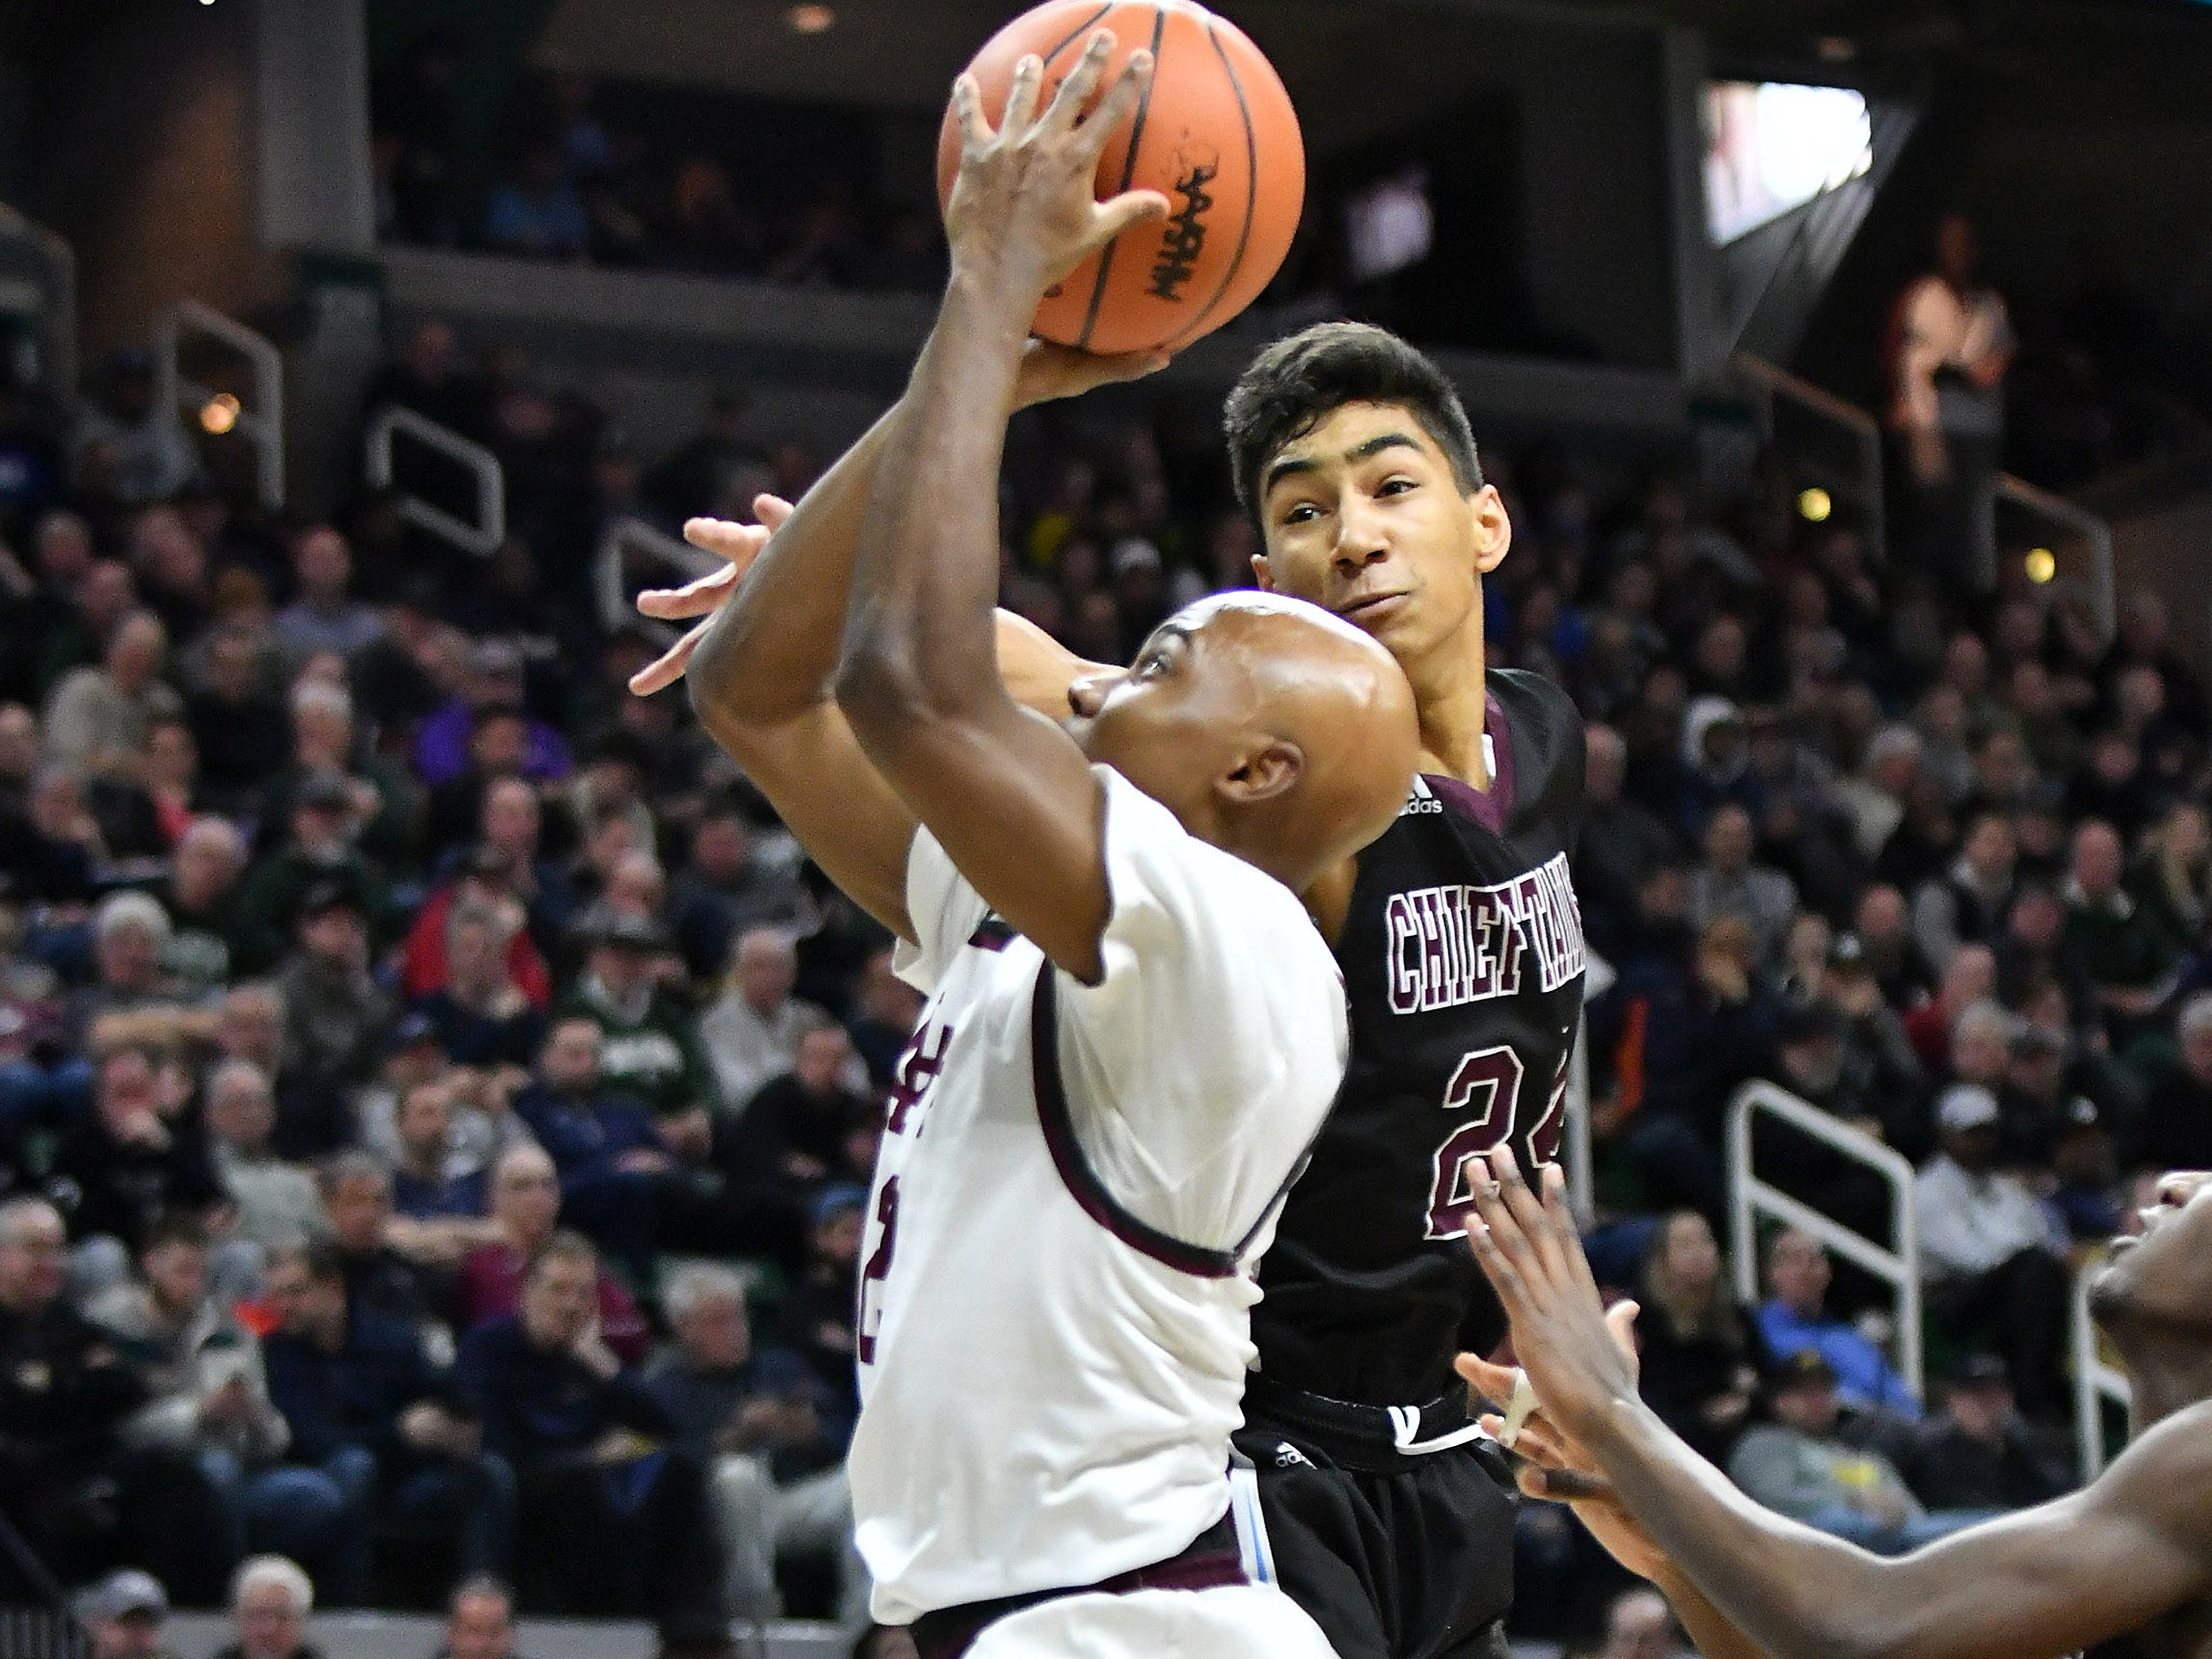 Okemos's Evan Thomas defends a shot by U-D Jesuit's Caleb Hunter (2) in the first half.